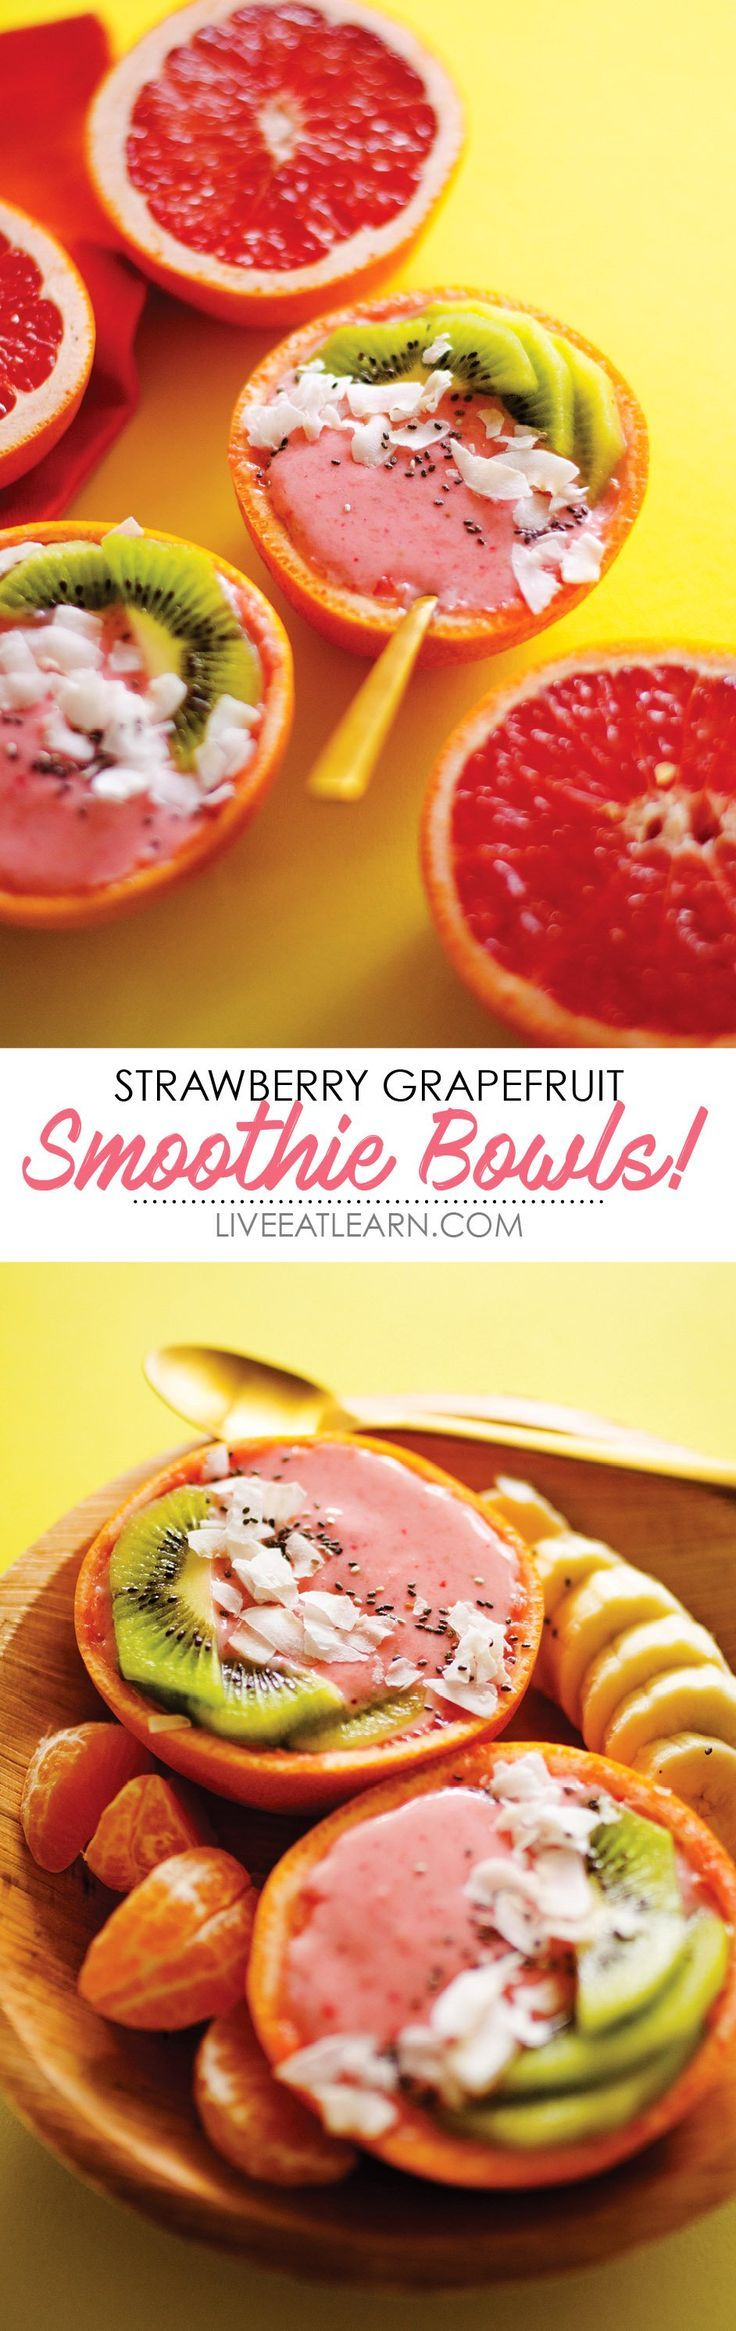 If you love sitting down for a healthy breakfast but don't love spending anymore than 5 minutes in the kitchen, smoothie bowls are right up your alley. This Strawberry Grapefruit Smoothie Bowl recipe is packed with fruit and is perfect for a weekend breakfast. // Live Eat Learn